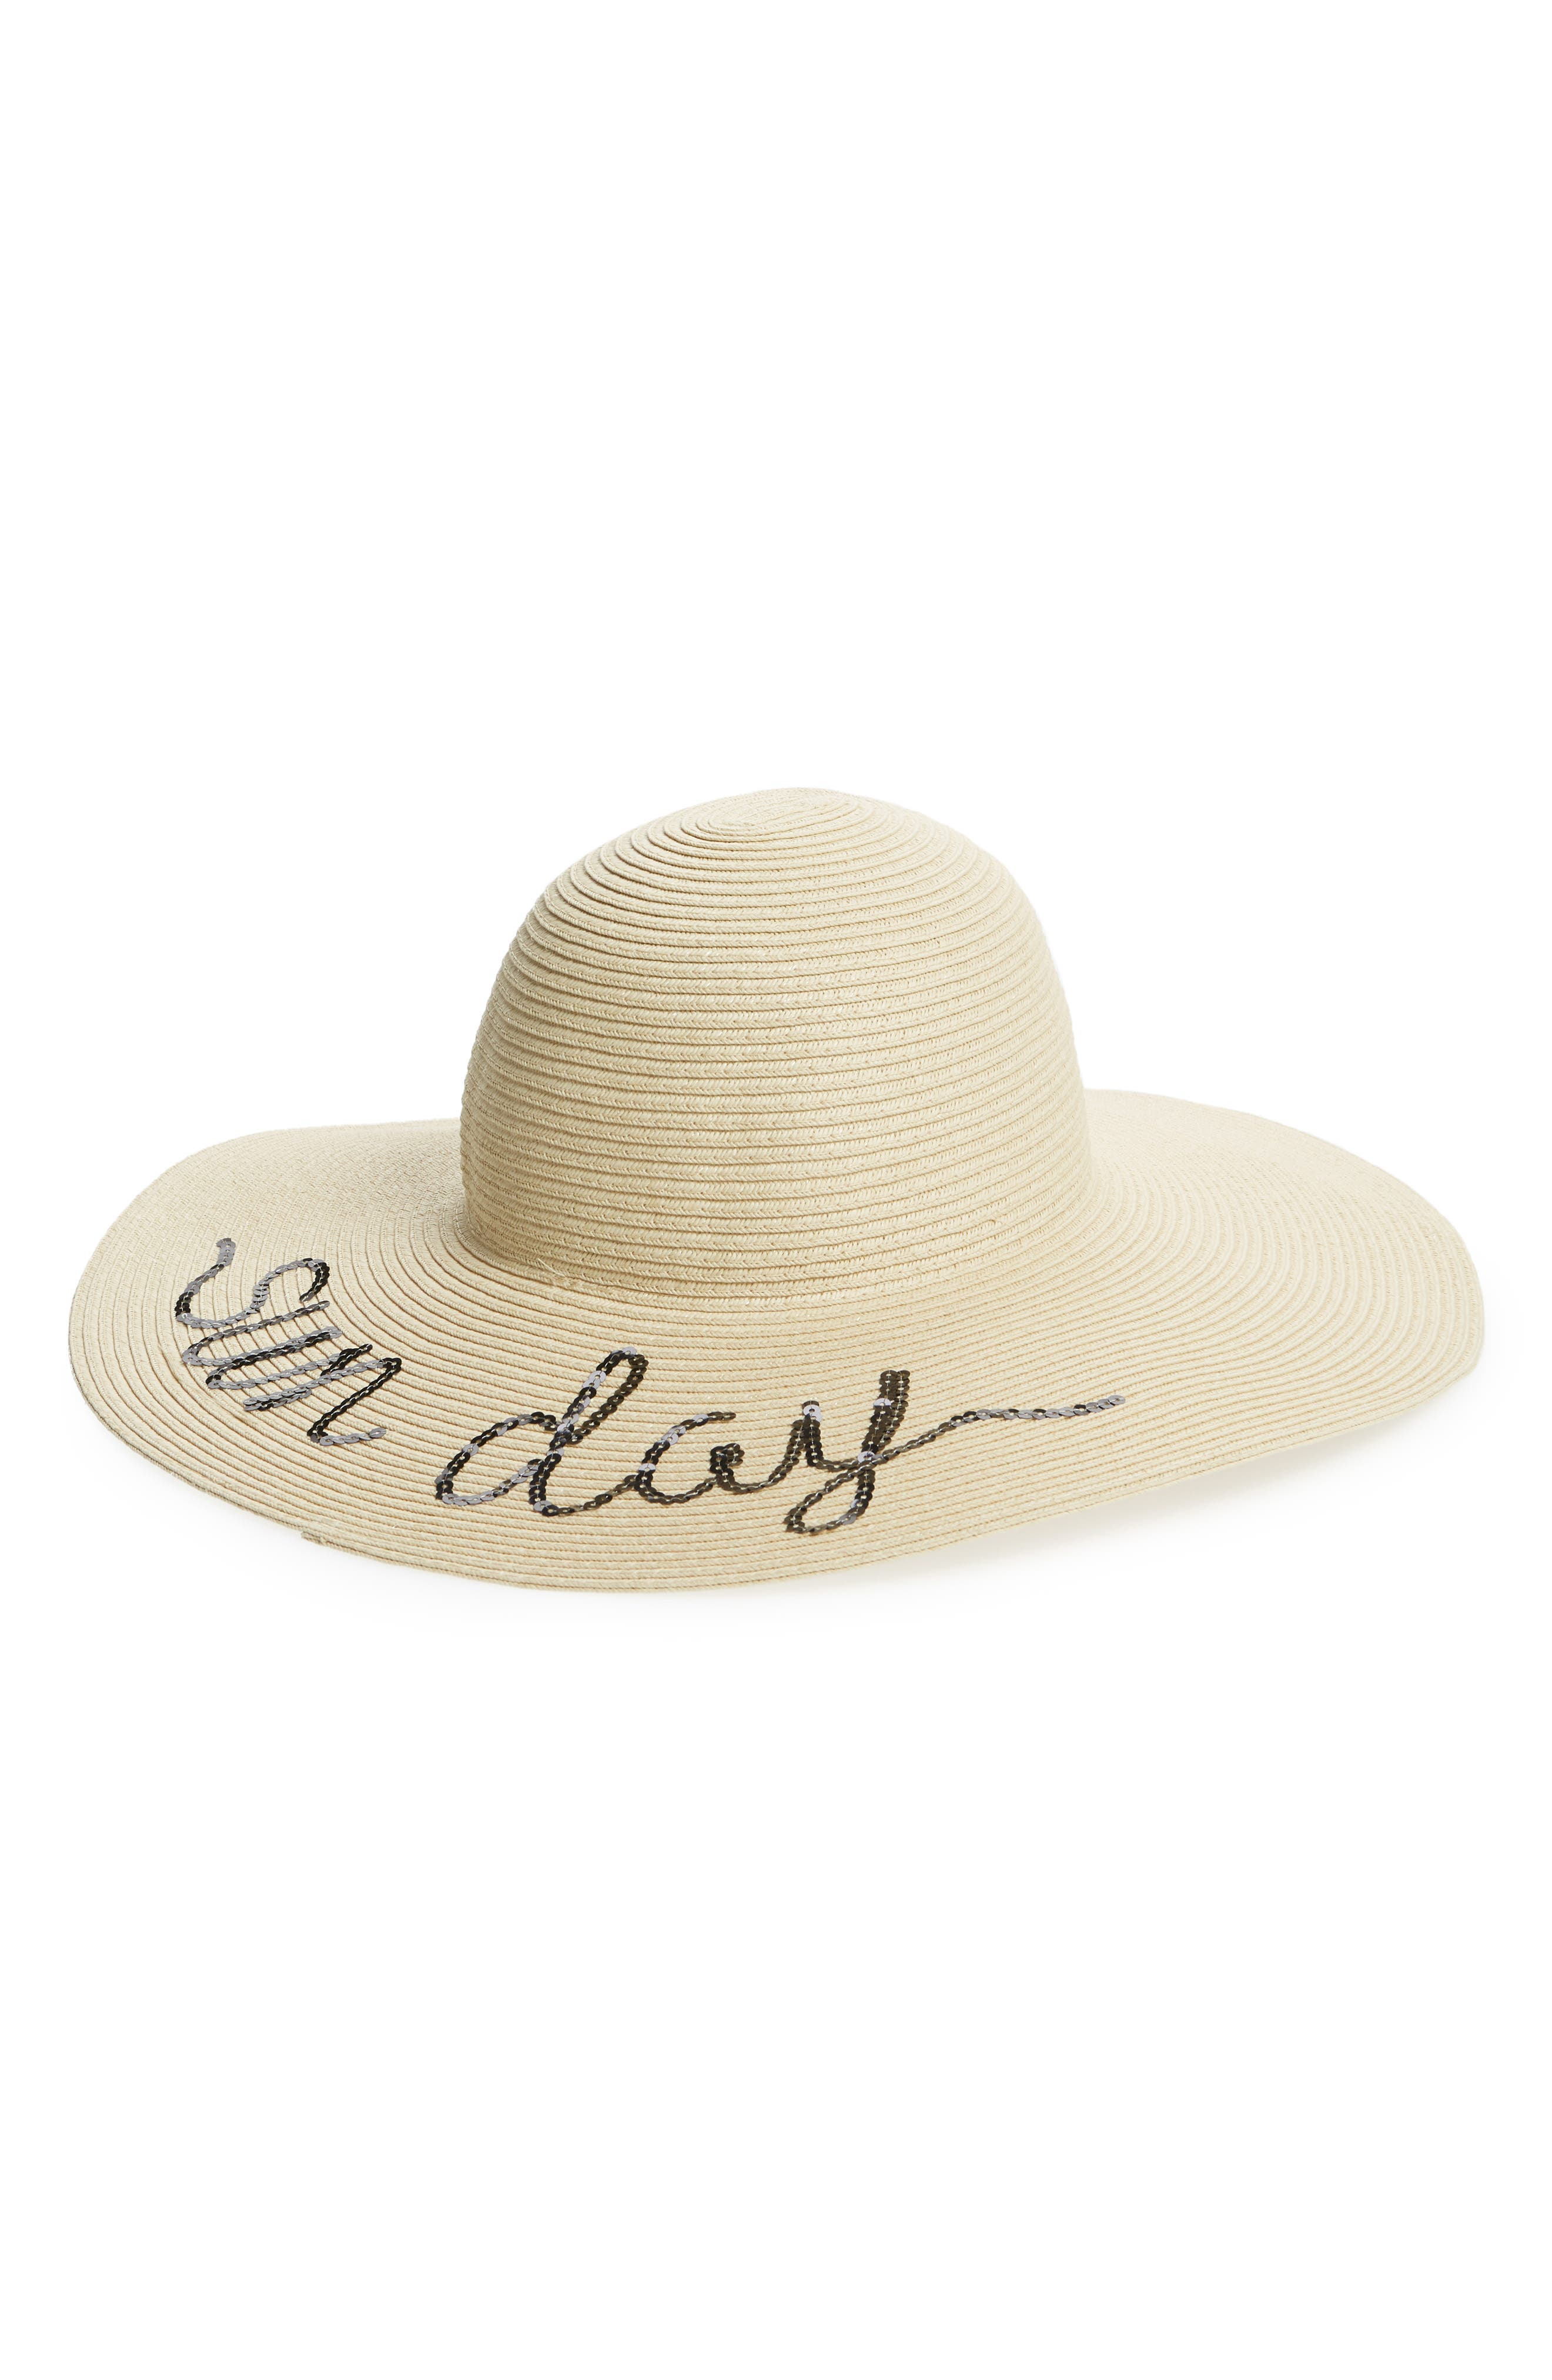 Sequin Embroidered Straw Sun Hat,                         Main,                         color, Natural